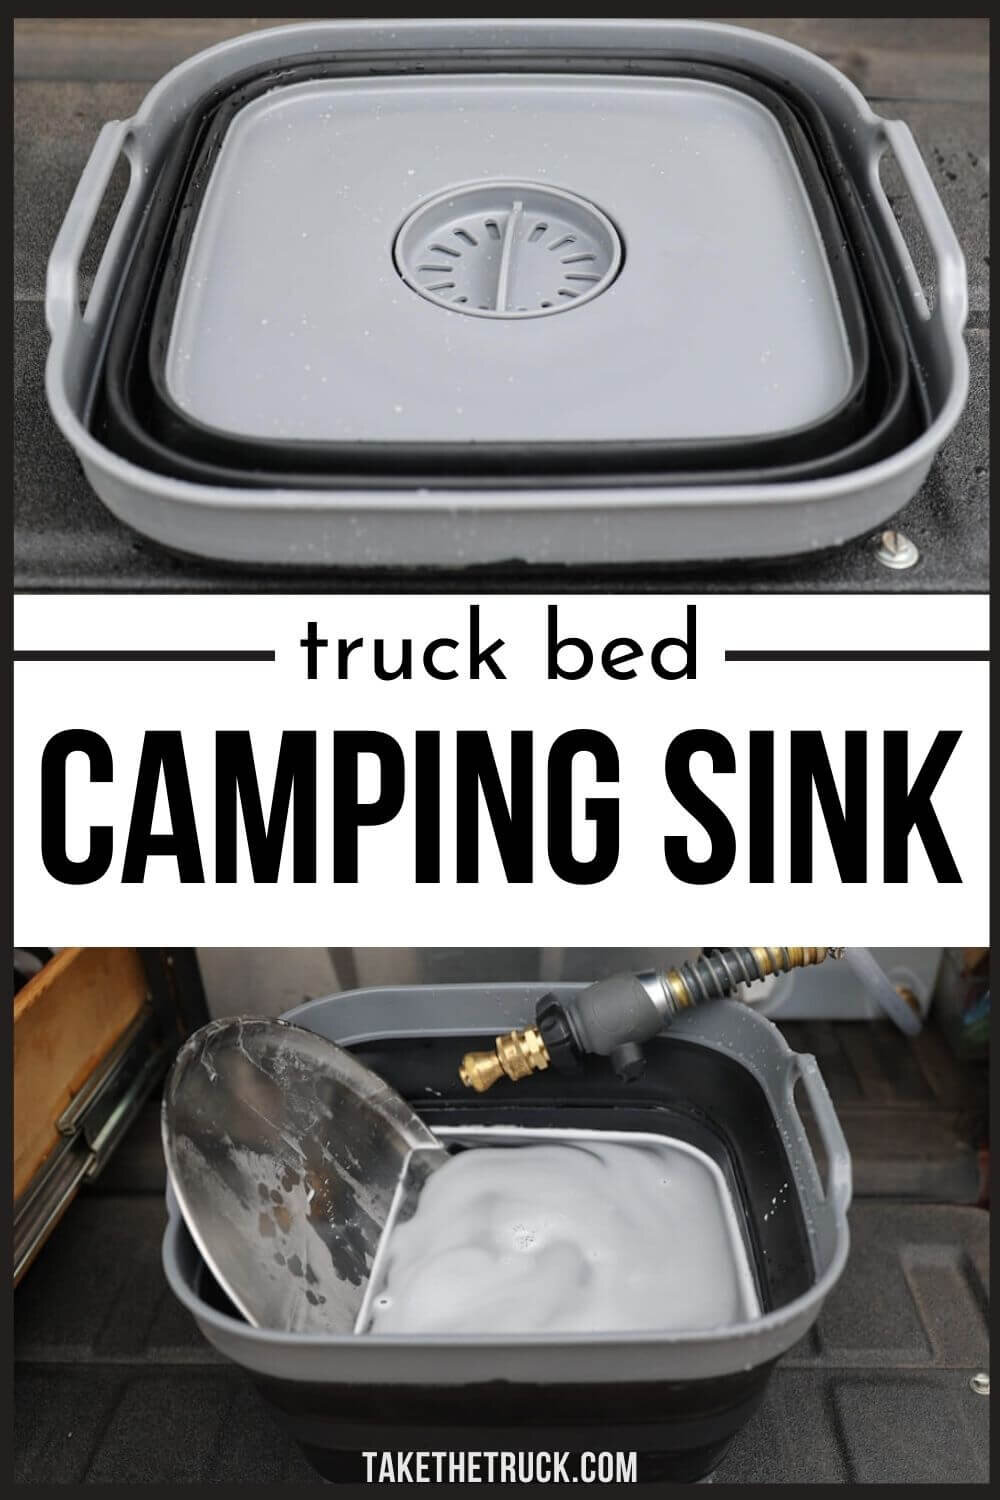 Looking for some great portable camping sink ideas? This post can help, whether you need a backpacking sink, collapsible camping sink, truck bed camping sink, or car, suv, or minivan camping sink!